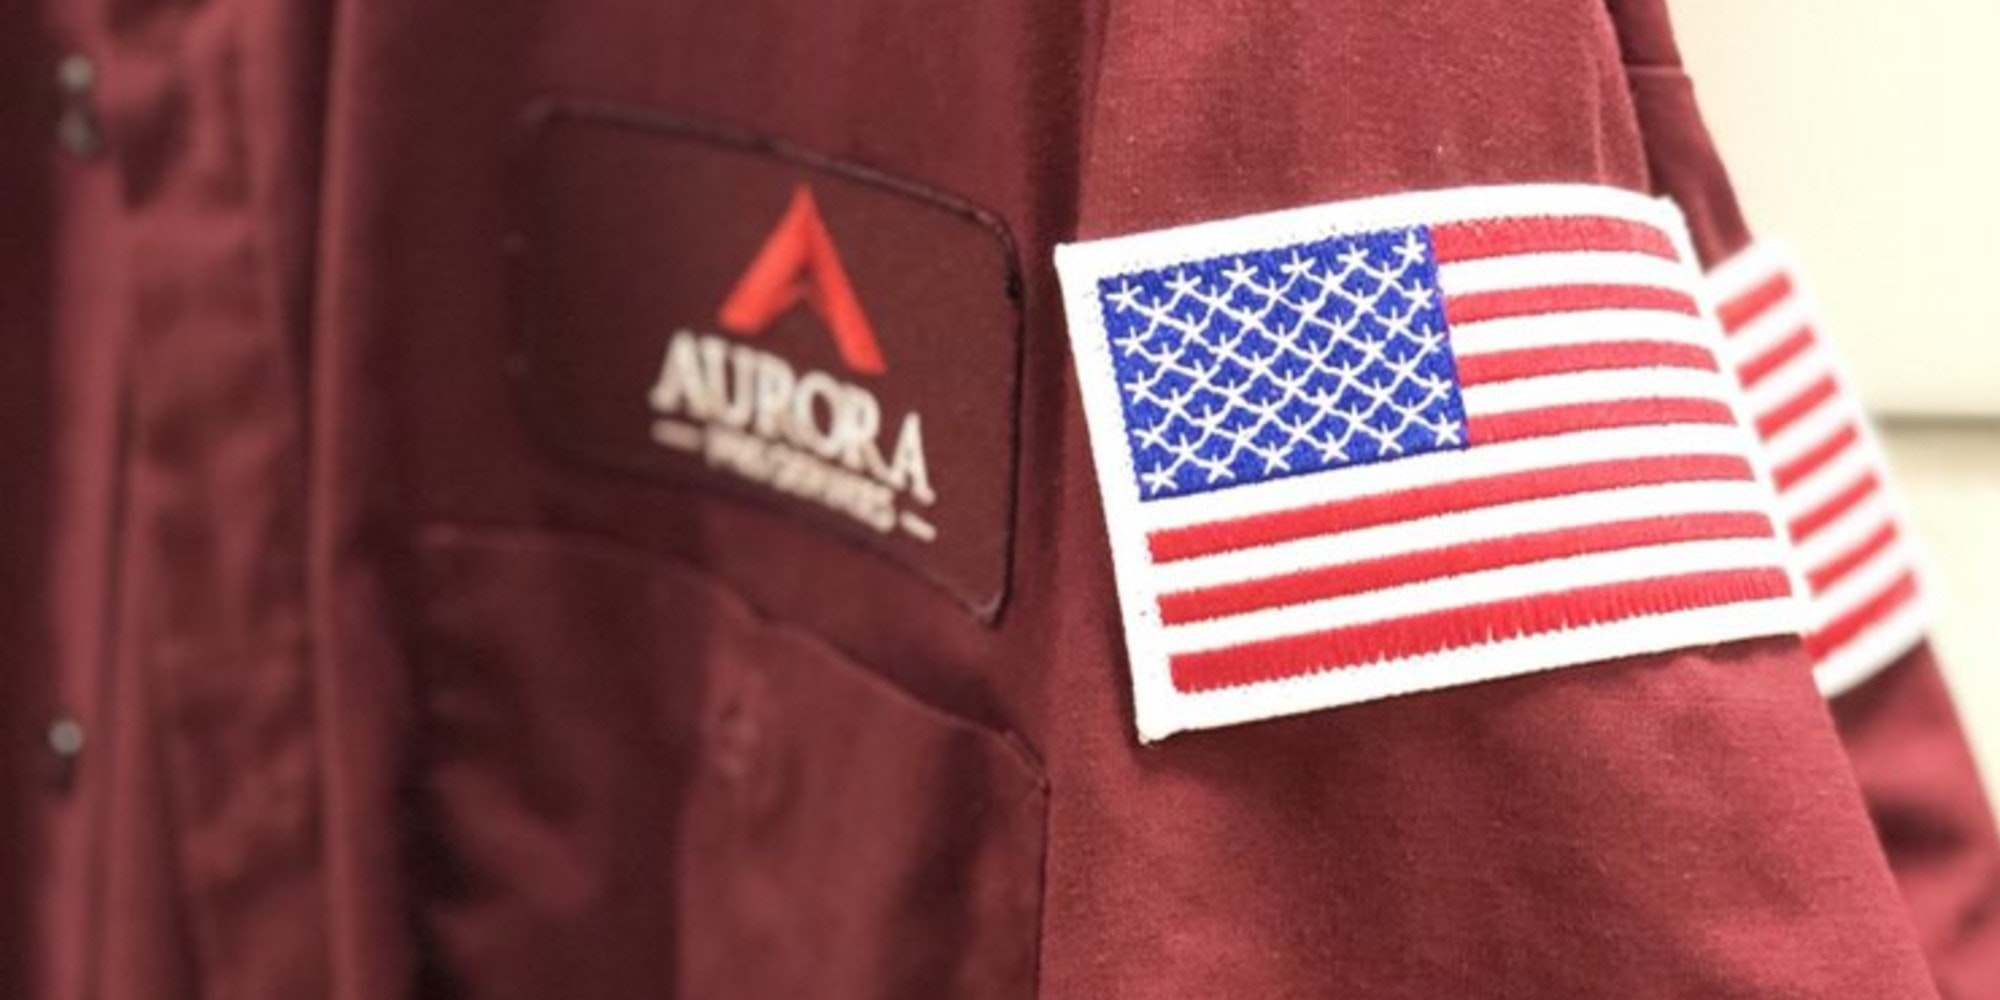 A uniform for Aurora Pro Services